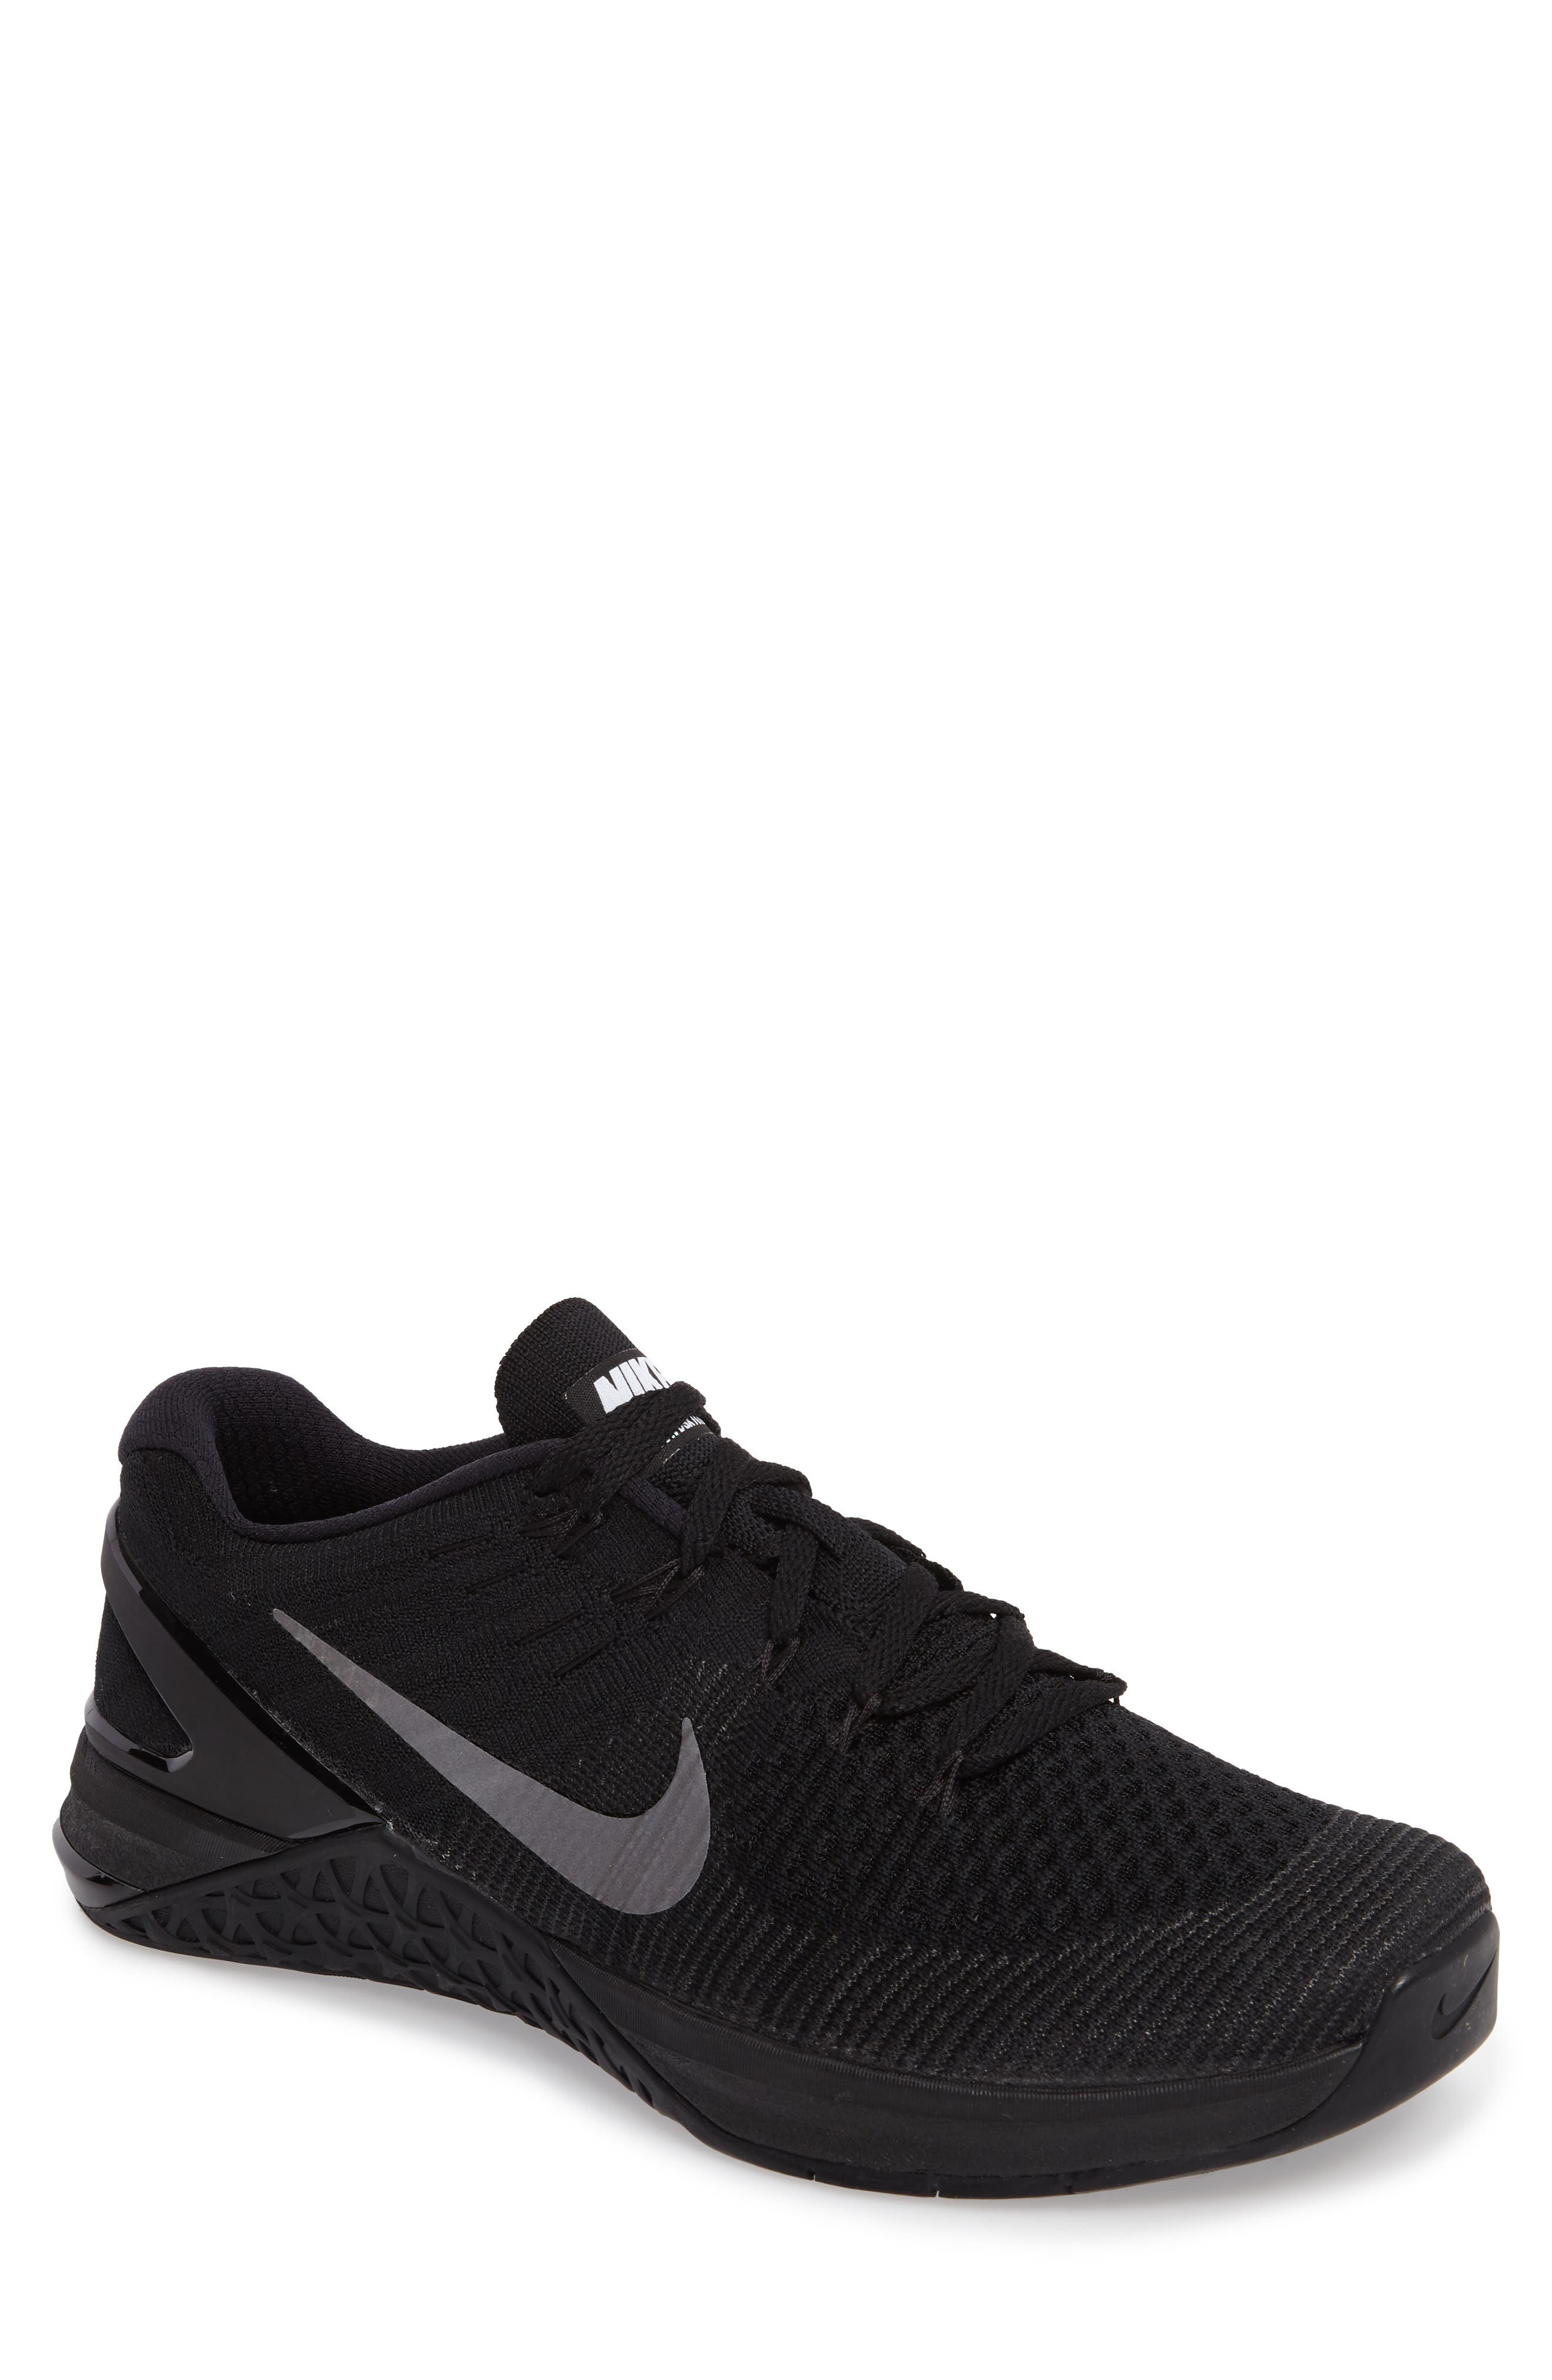 Metcon DSX Flyknit Training Shoe, Main, color, 004